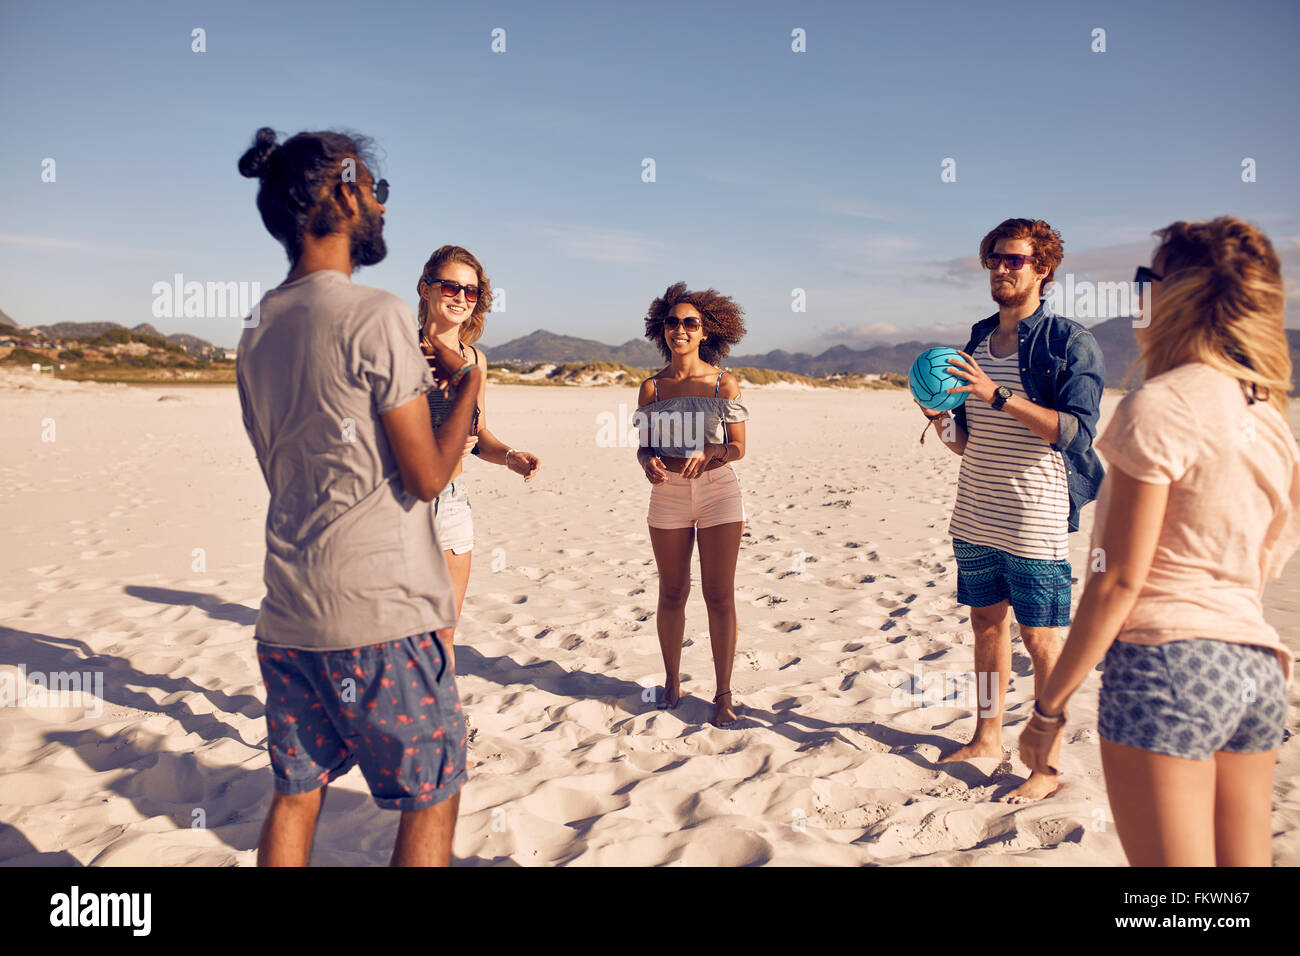 Group of young people standing in circle on the beach and playing with ball. Young friends playing ball game on - Stock Image